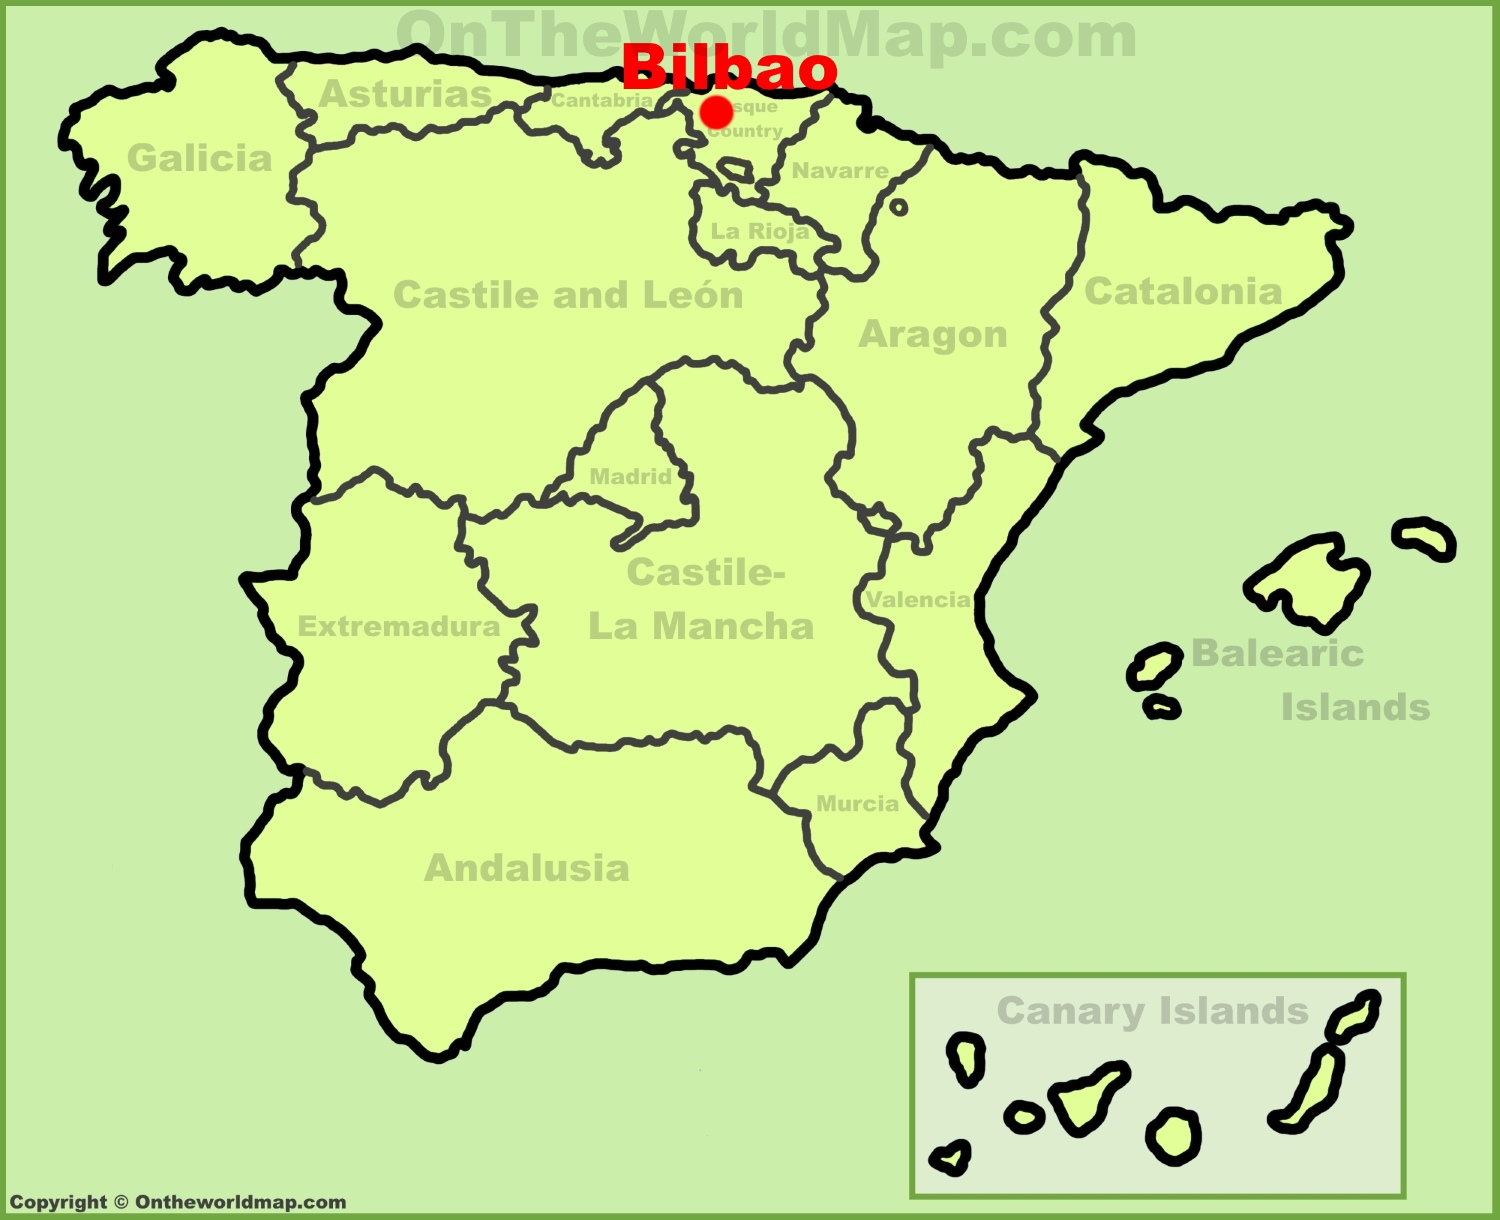 Bilbao location on the Spain map